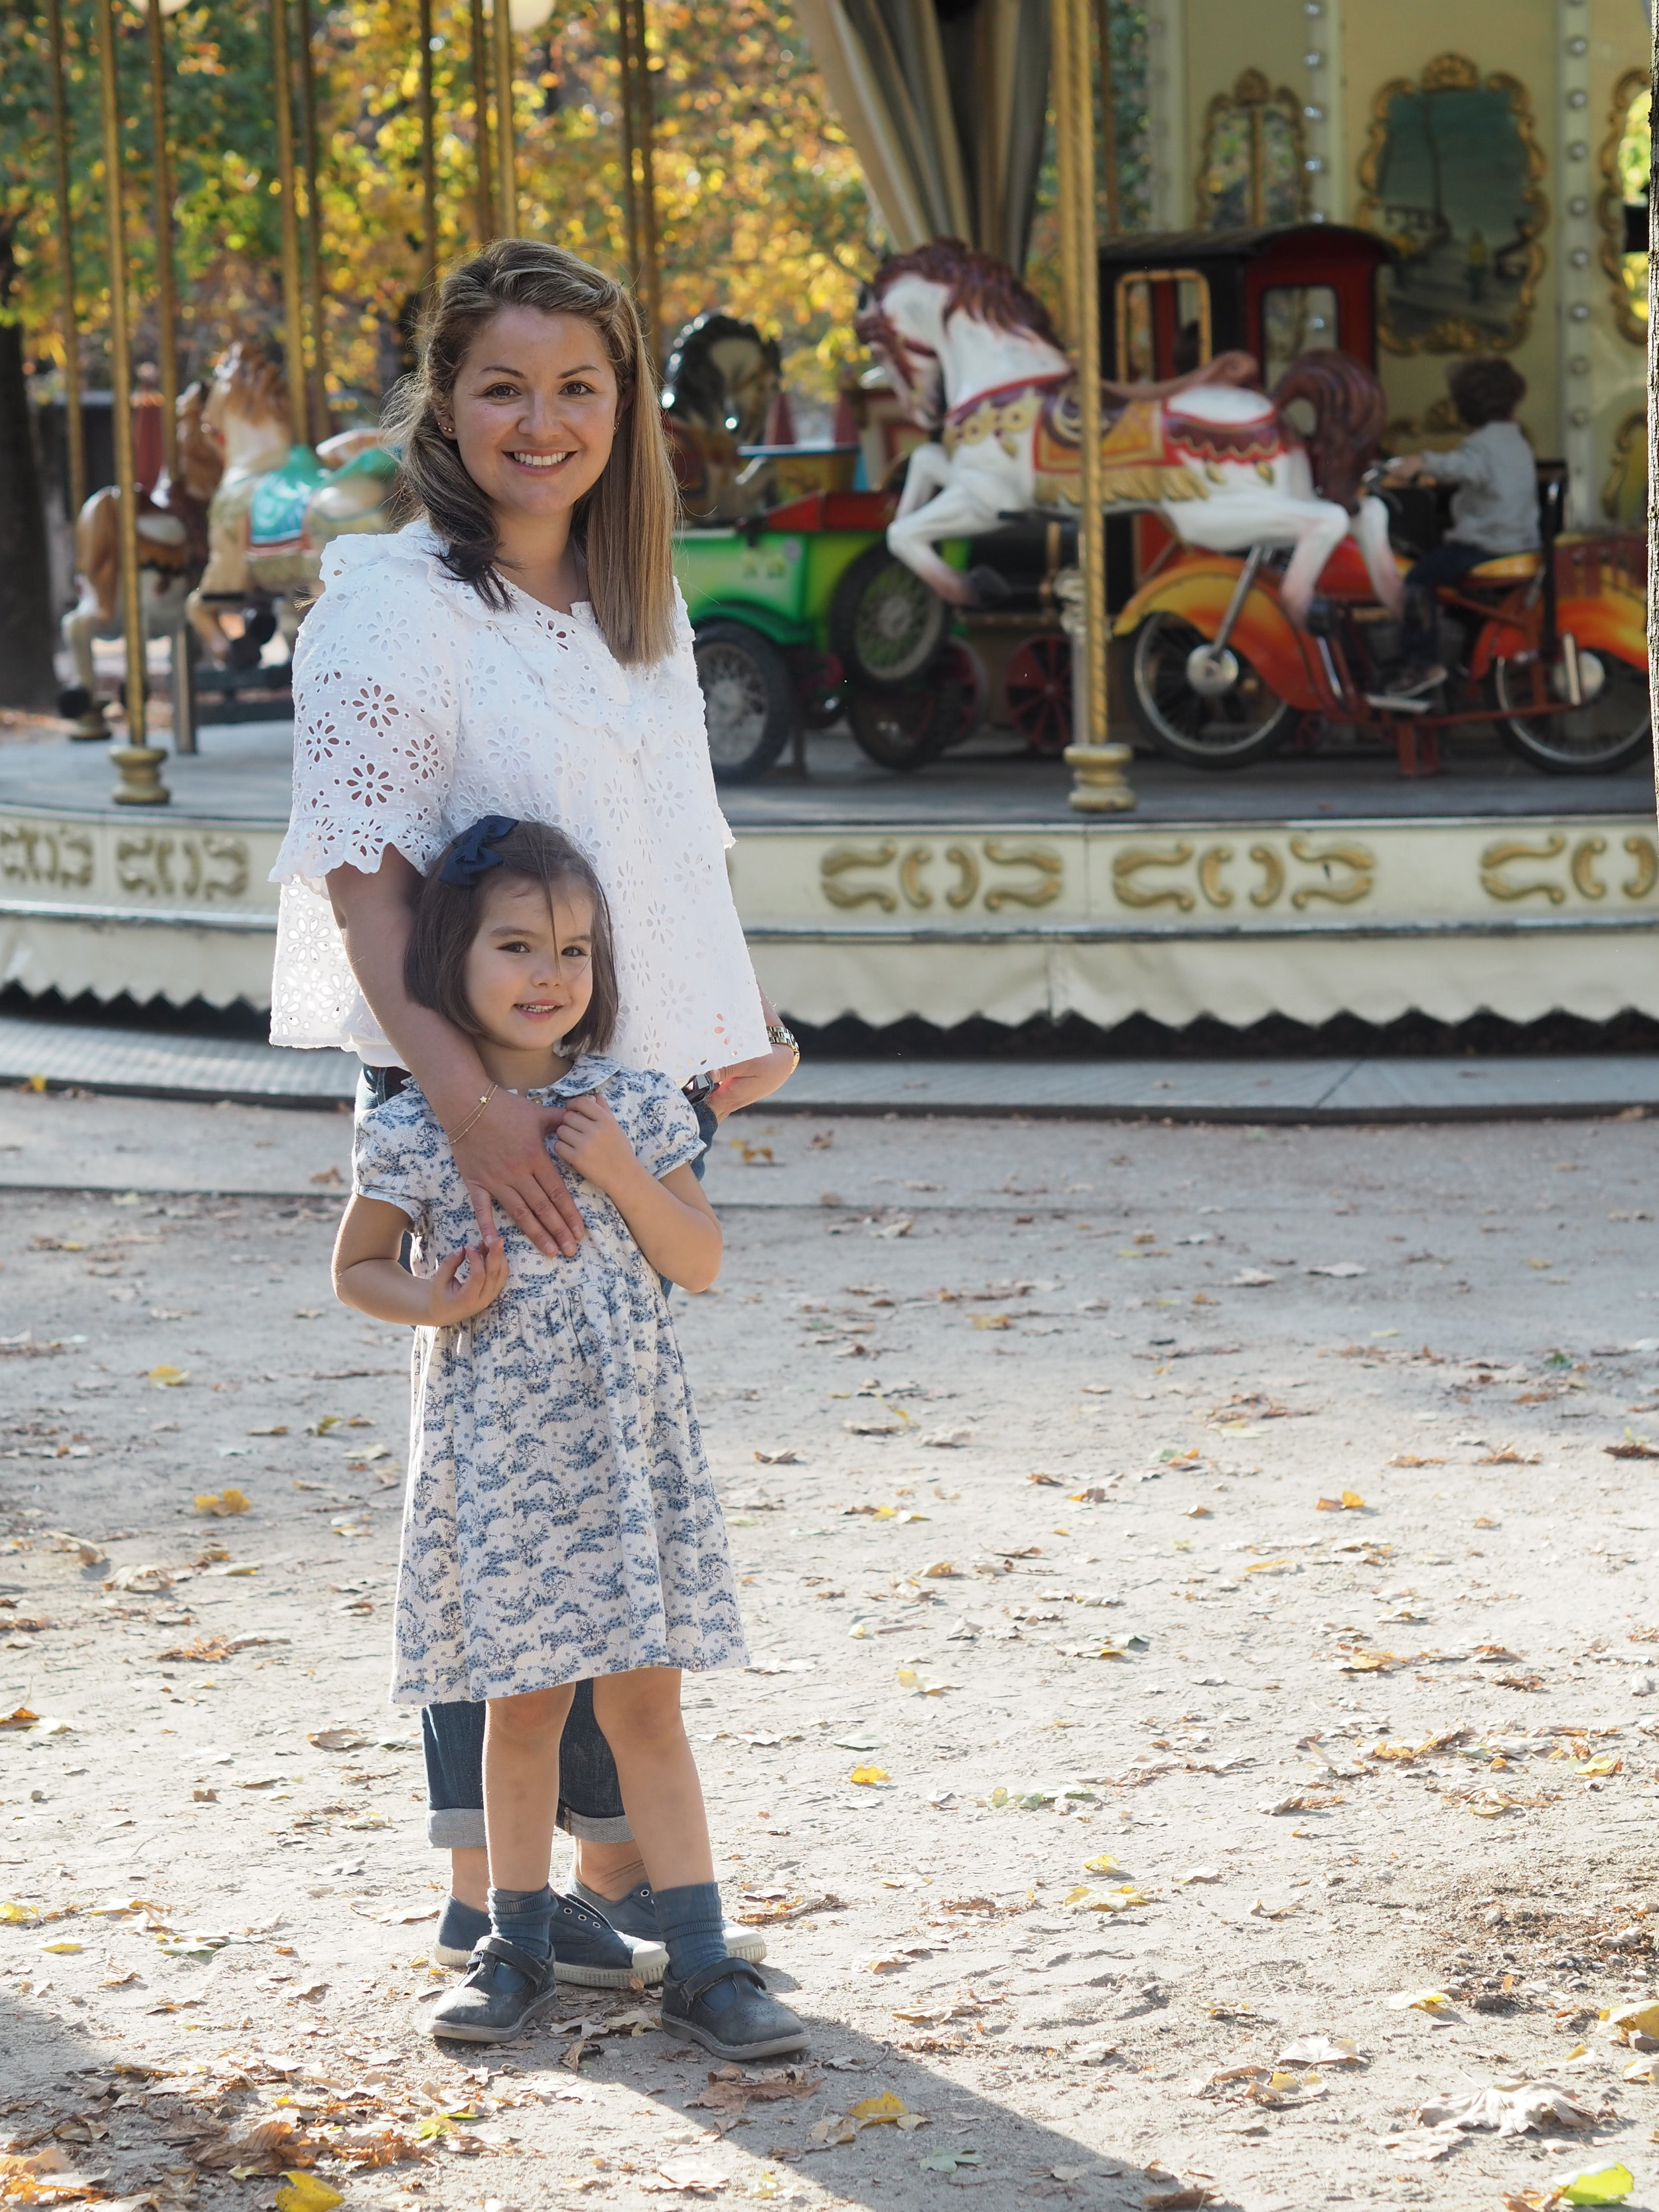 a beautiful mama & daughter we met in the park. how adorable is this little girl & her outfit.